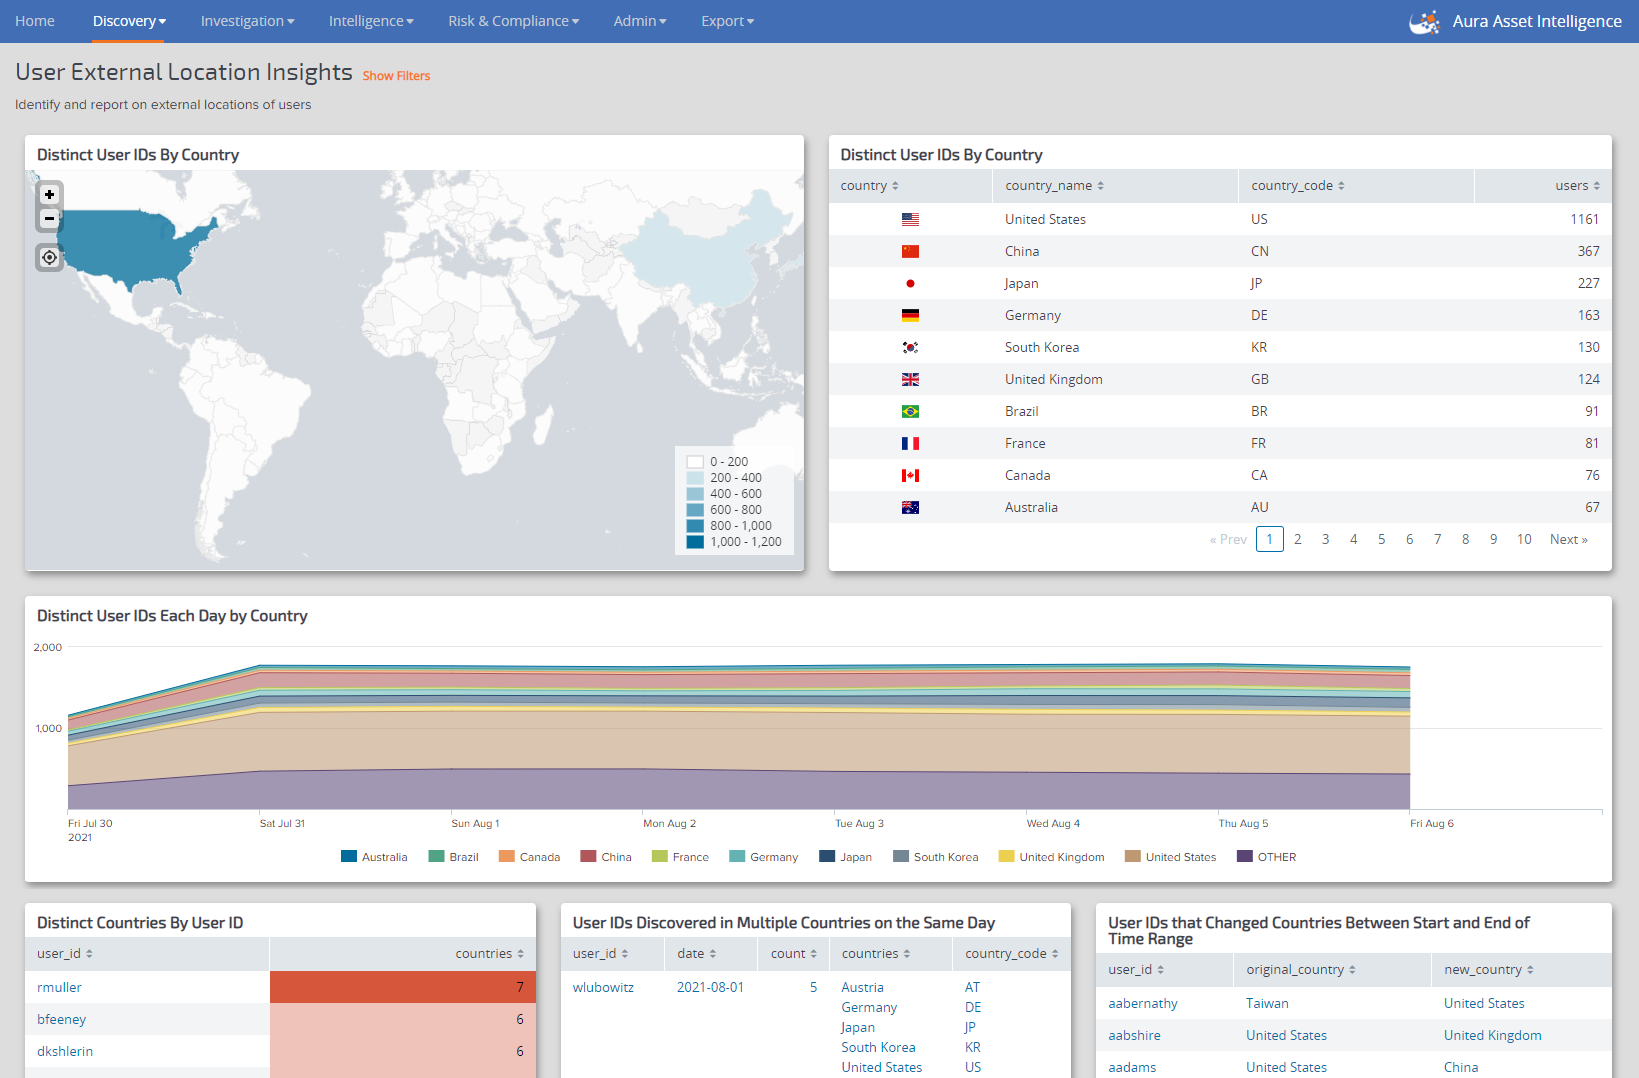 External Location Insights view in Aura identifying external locations